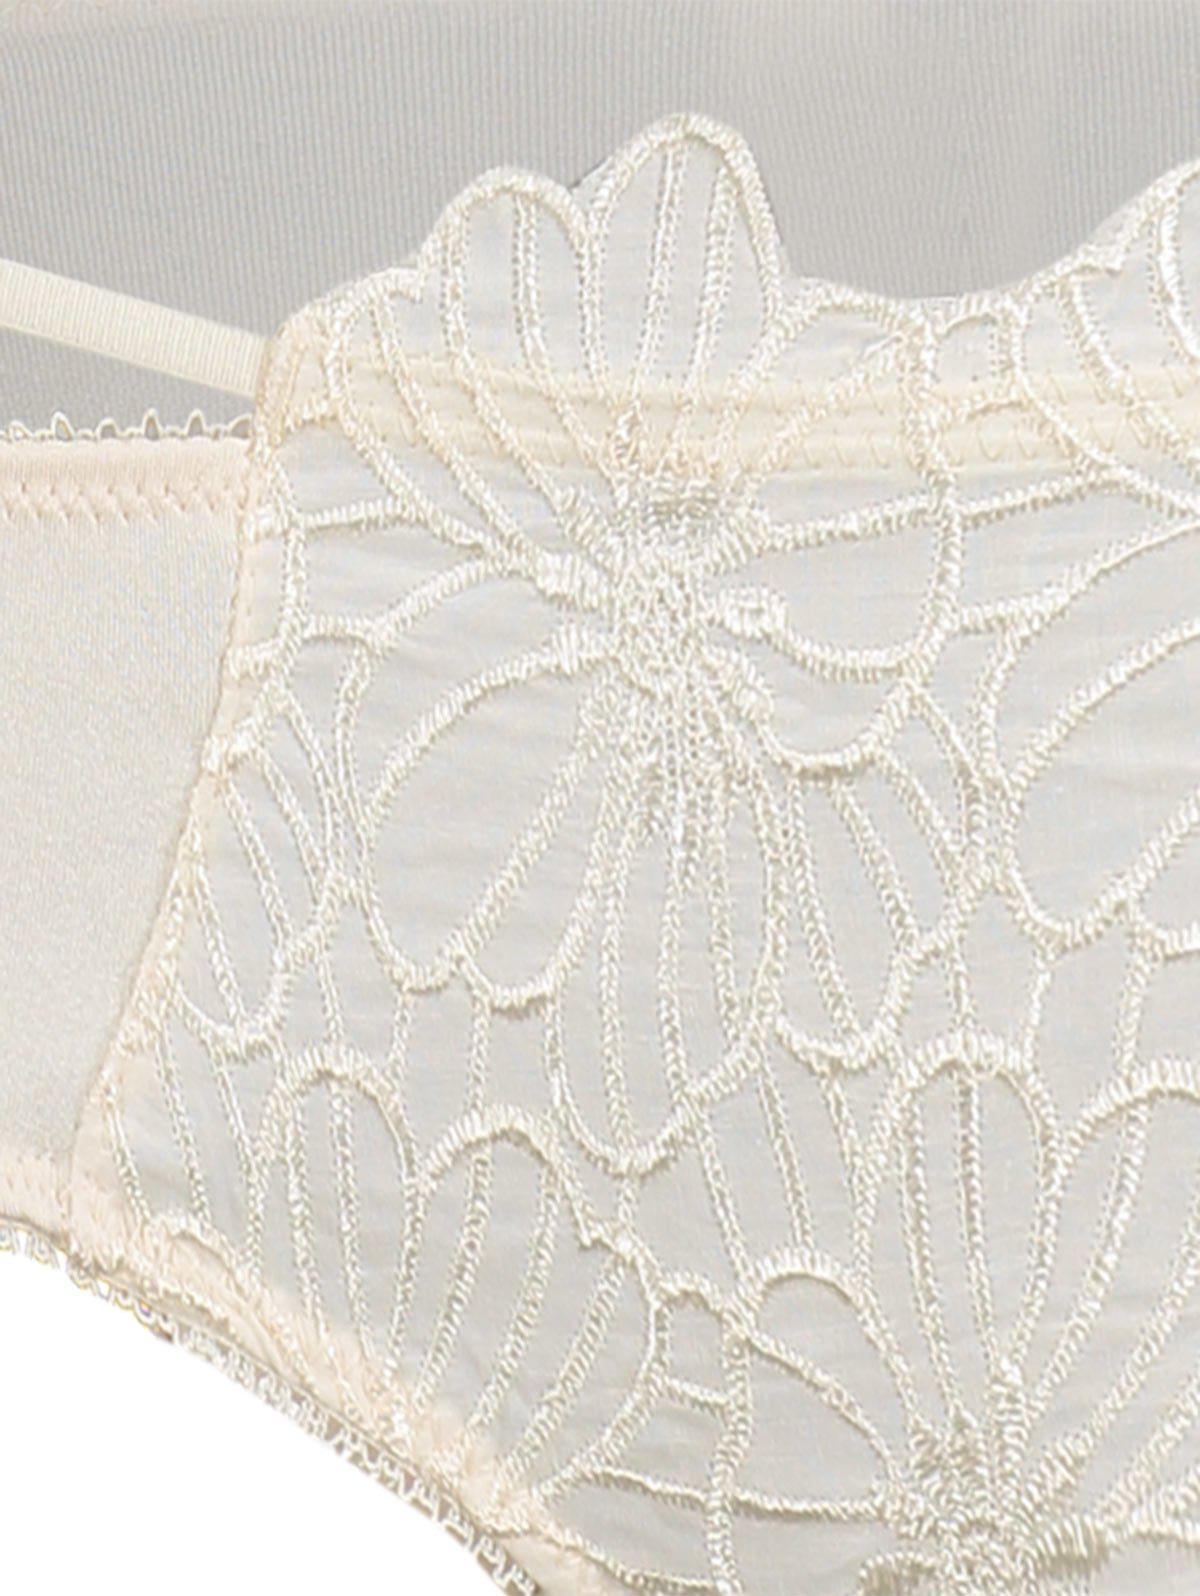 Double Strap Embroidered Underwire Bra Set - COMPLEXION 80B